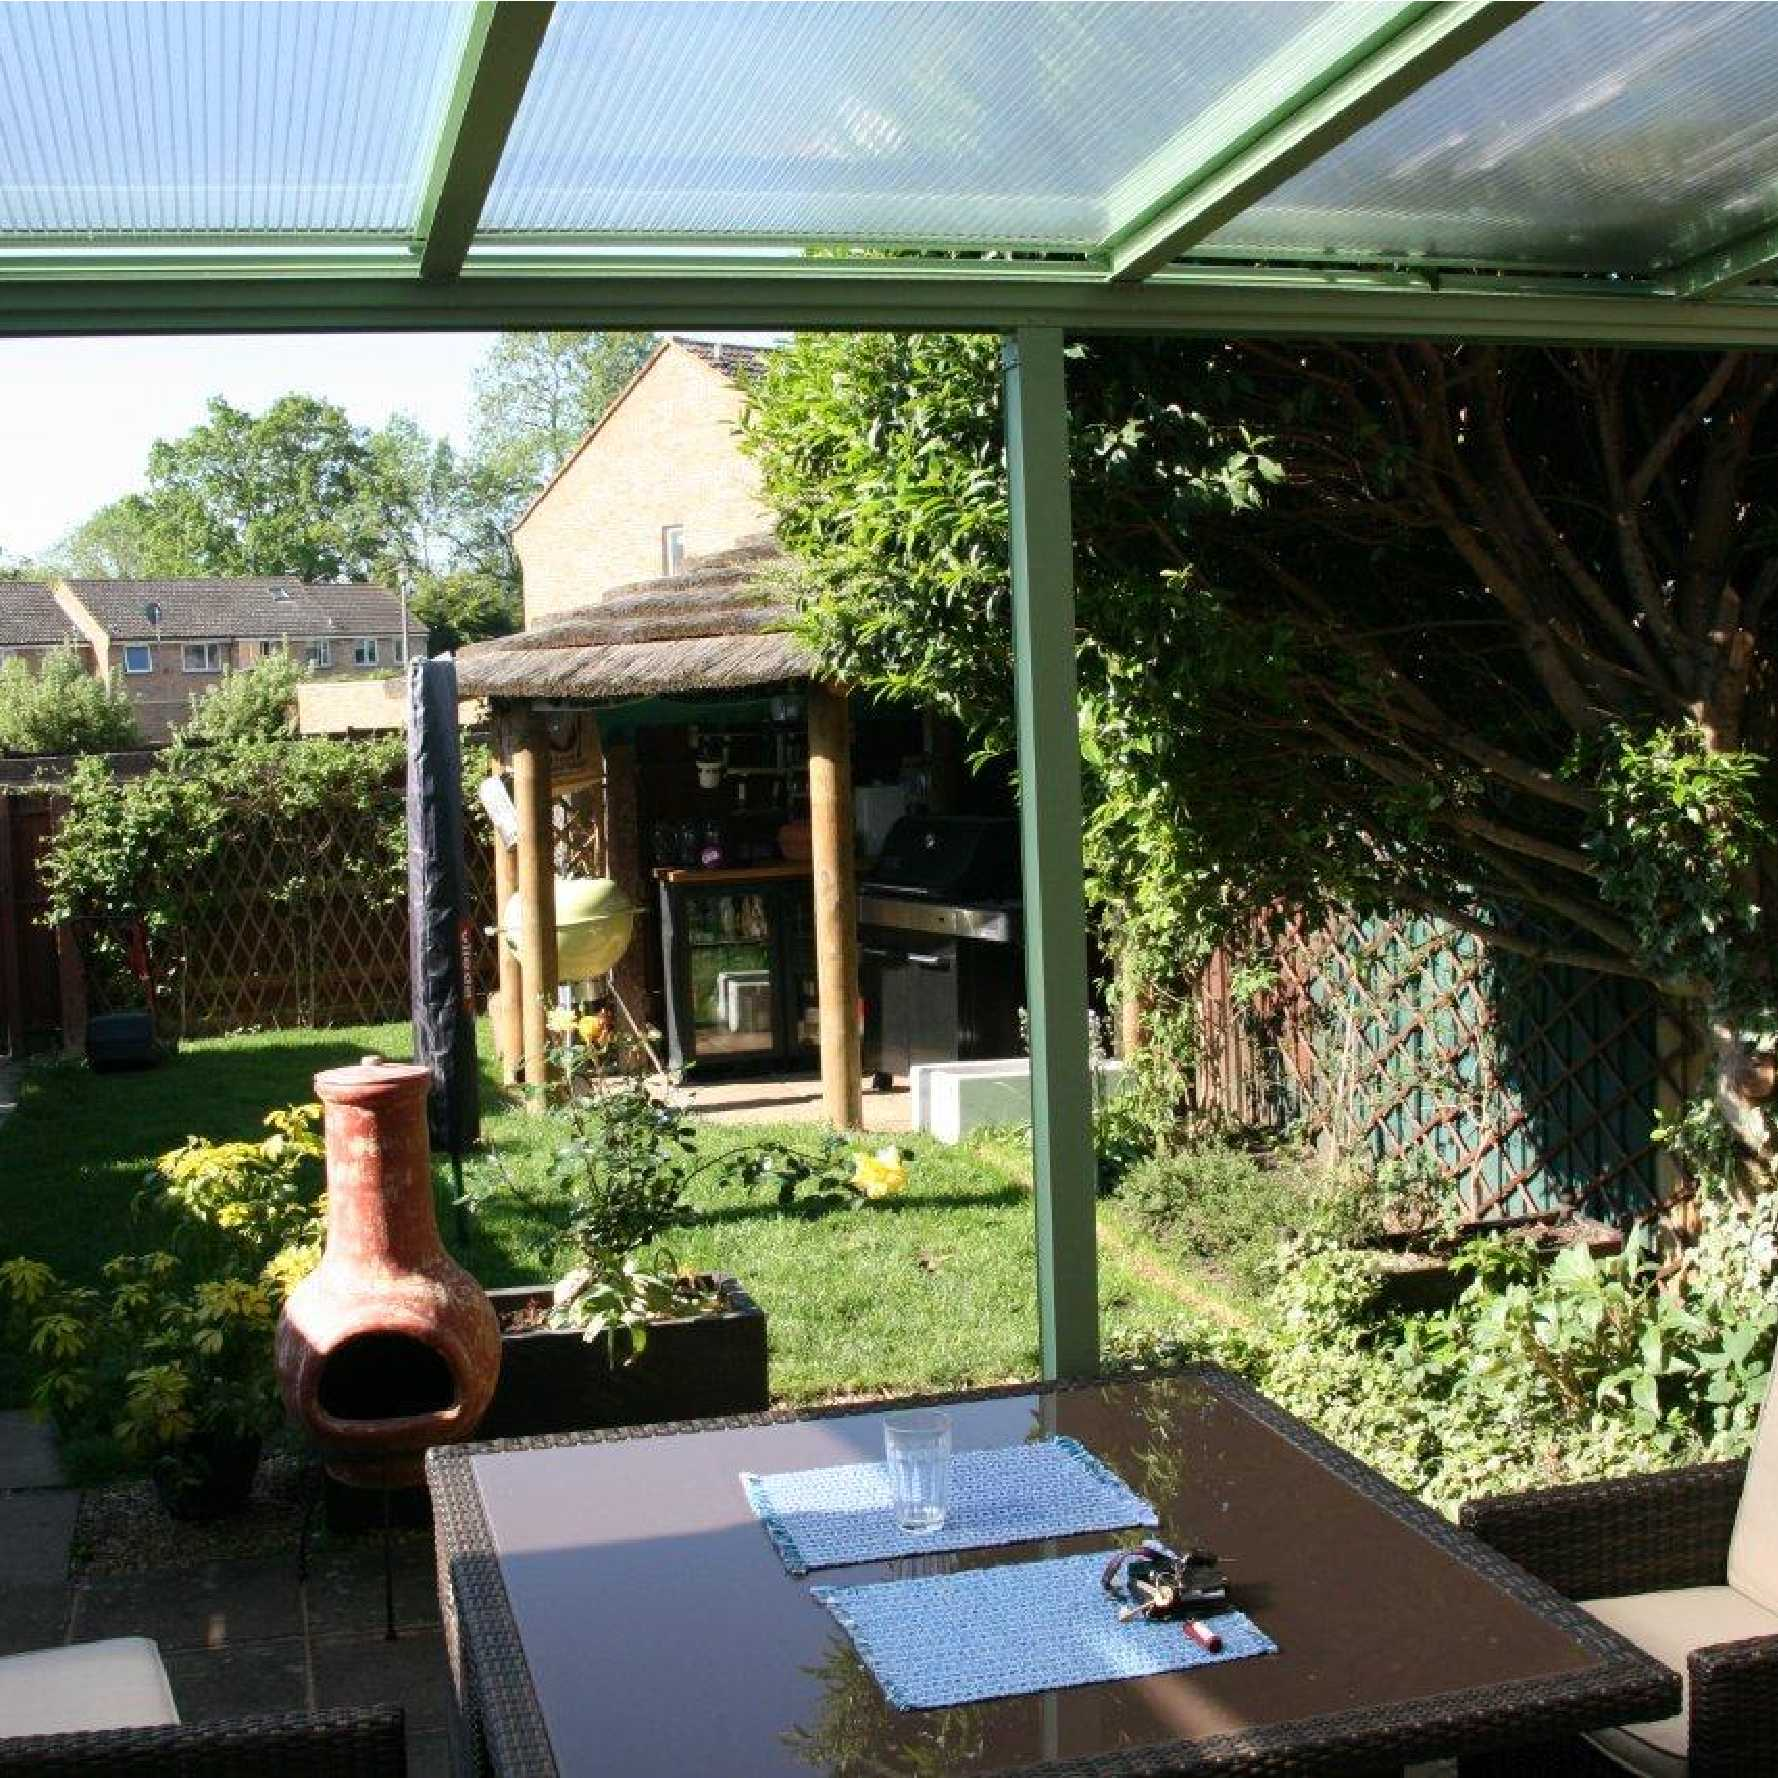 Affordable Omega Smart White Lean-To Canopy with 16mm Polycarbonate Glazing - 5.6m (W) x 3.5m (P), (3) Supporting Posts